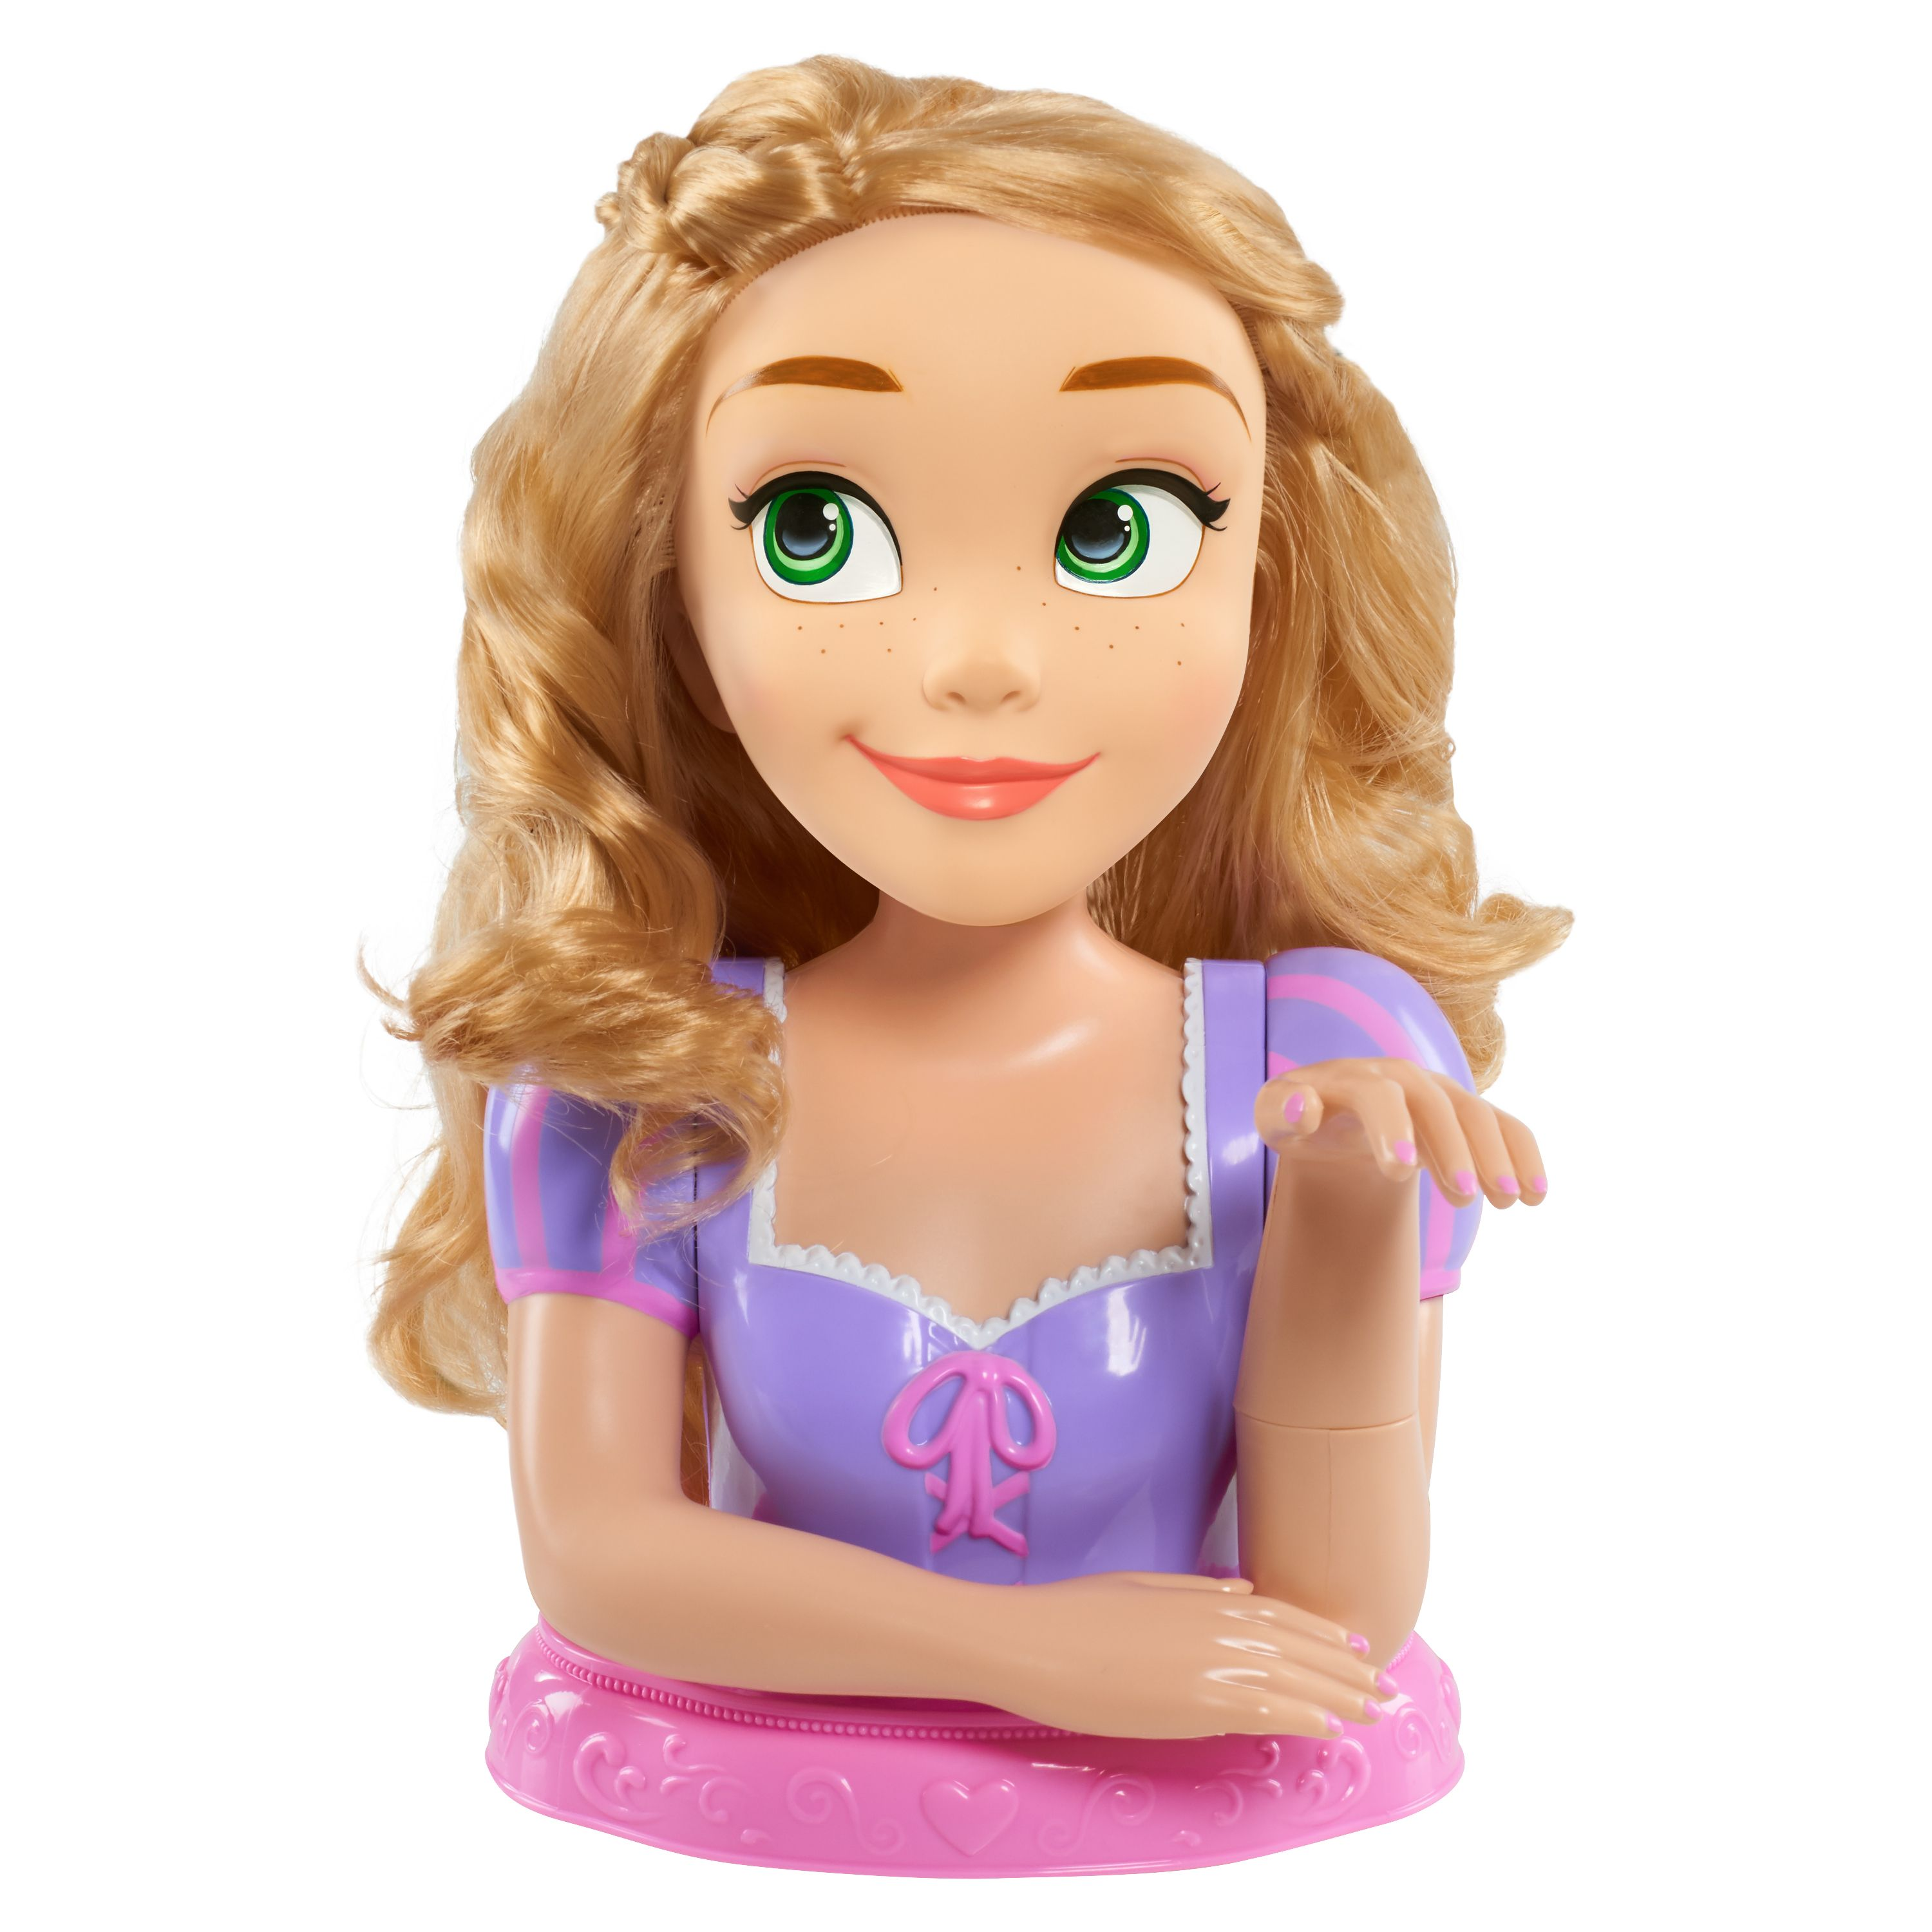 The Disney Rapunzel Styling Head Holds Endless Hair Play Possibilities Rapunzel Features Her Iconic Long Blonde Baby Doll Accessories Baby Girl Toys Rapunzel